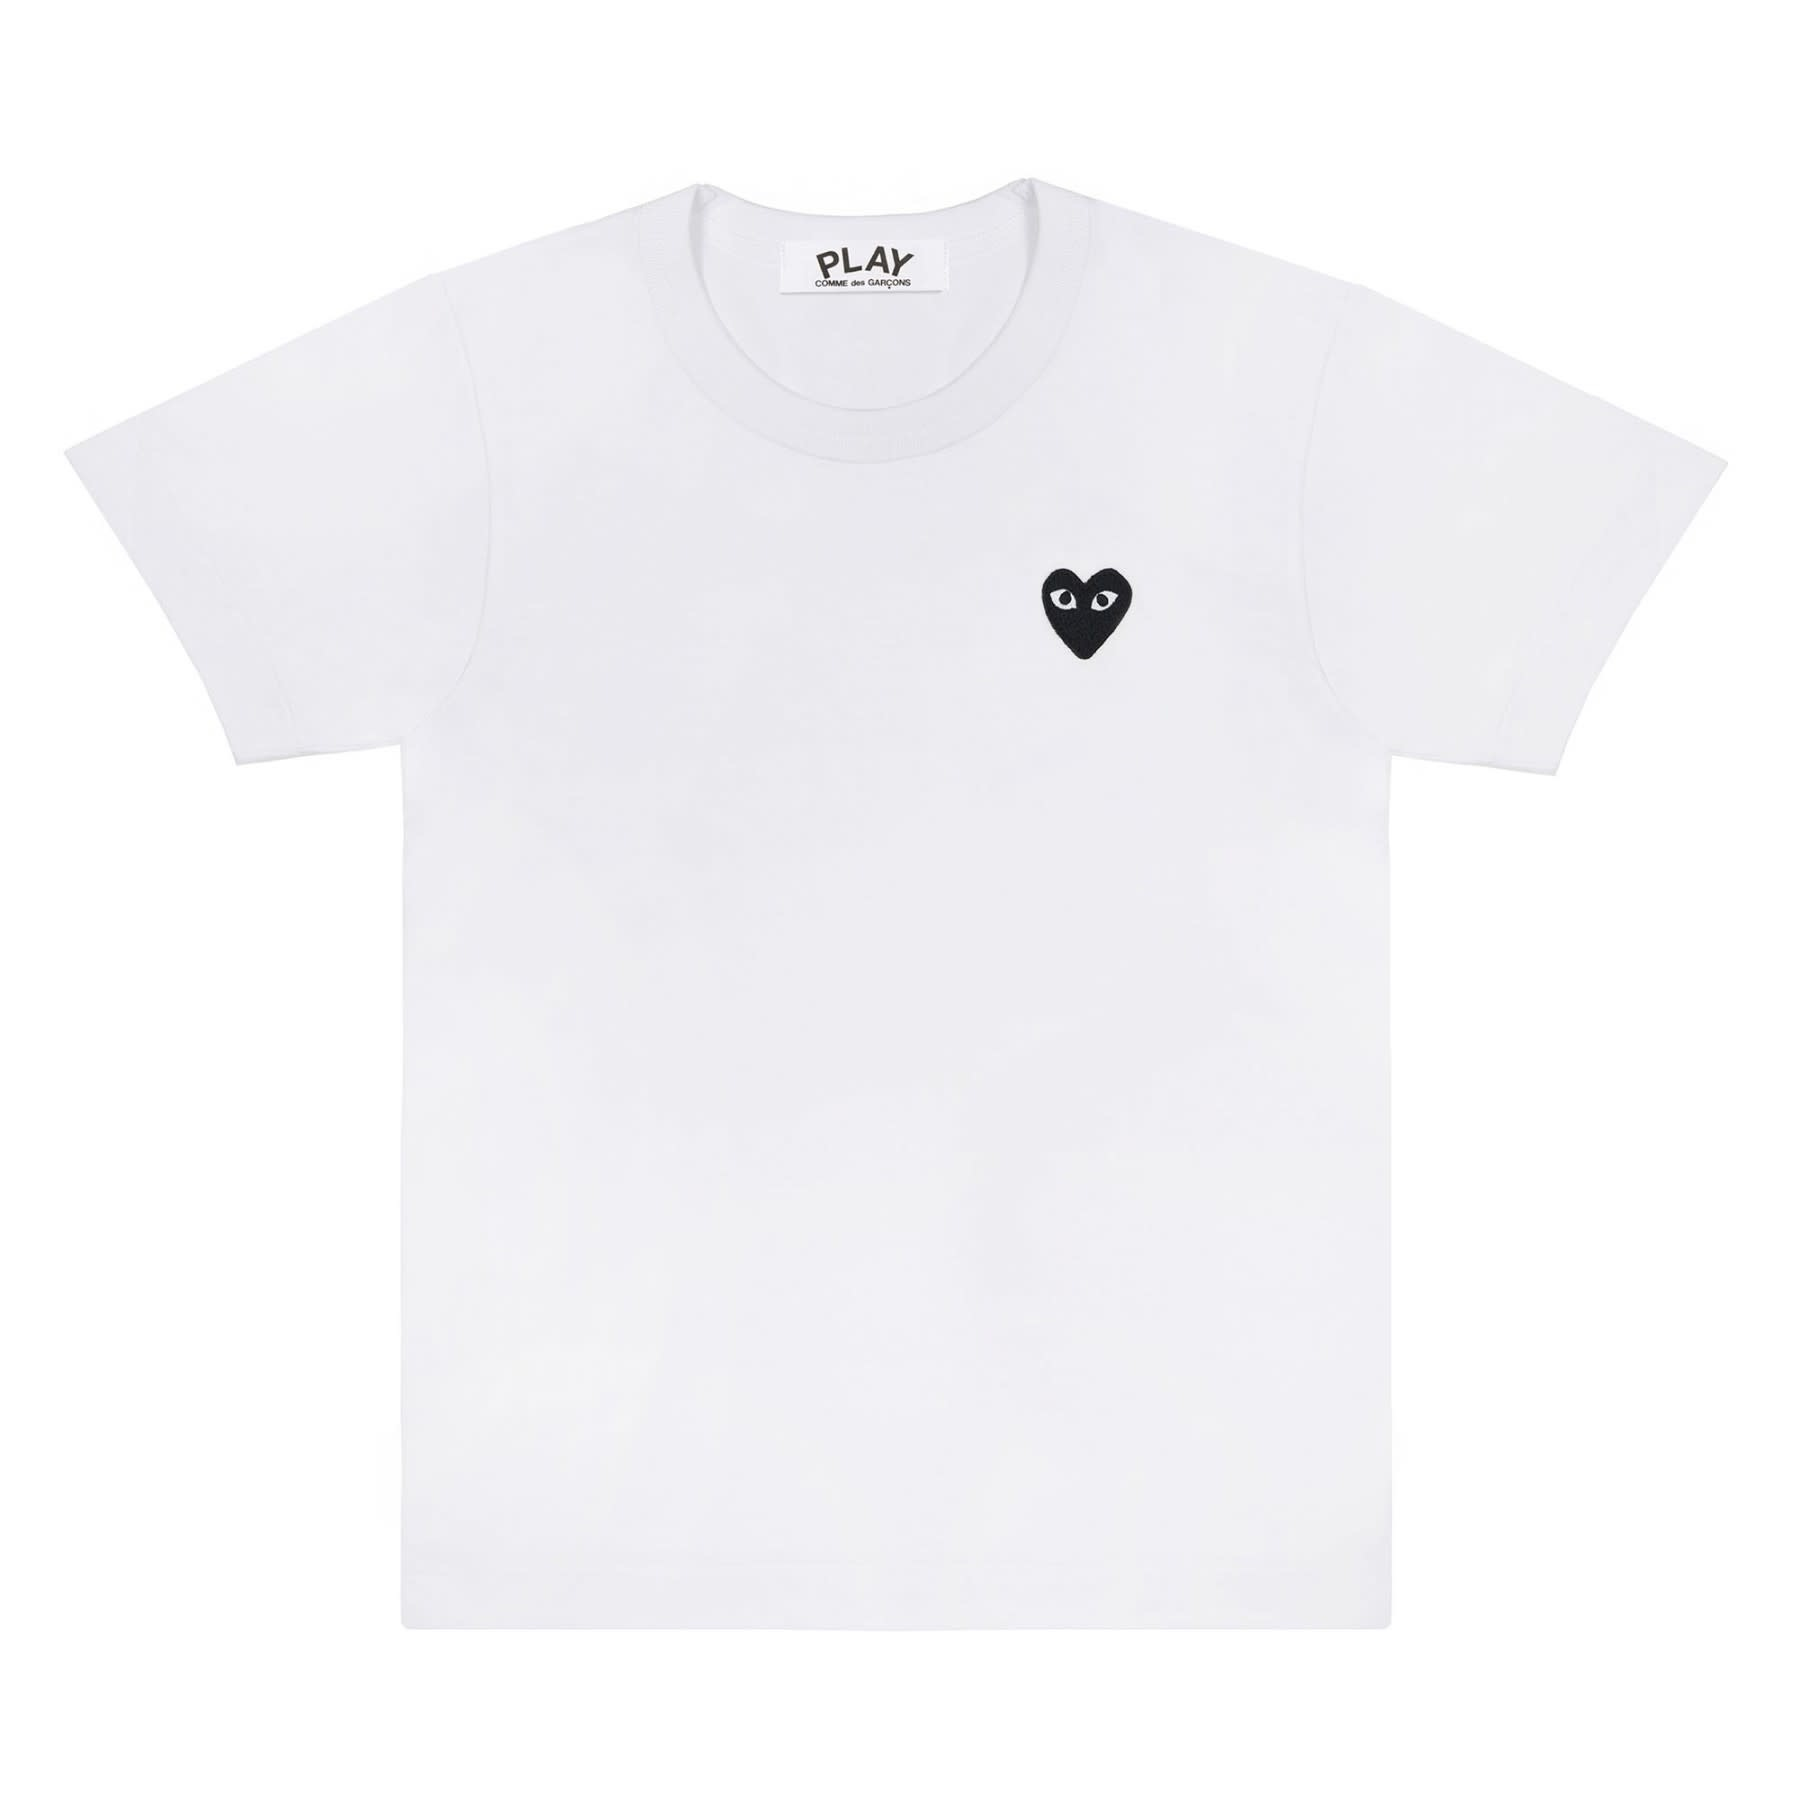 COMME des GARÇONS PLAY Black Small Heart T-shirt in White